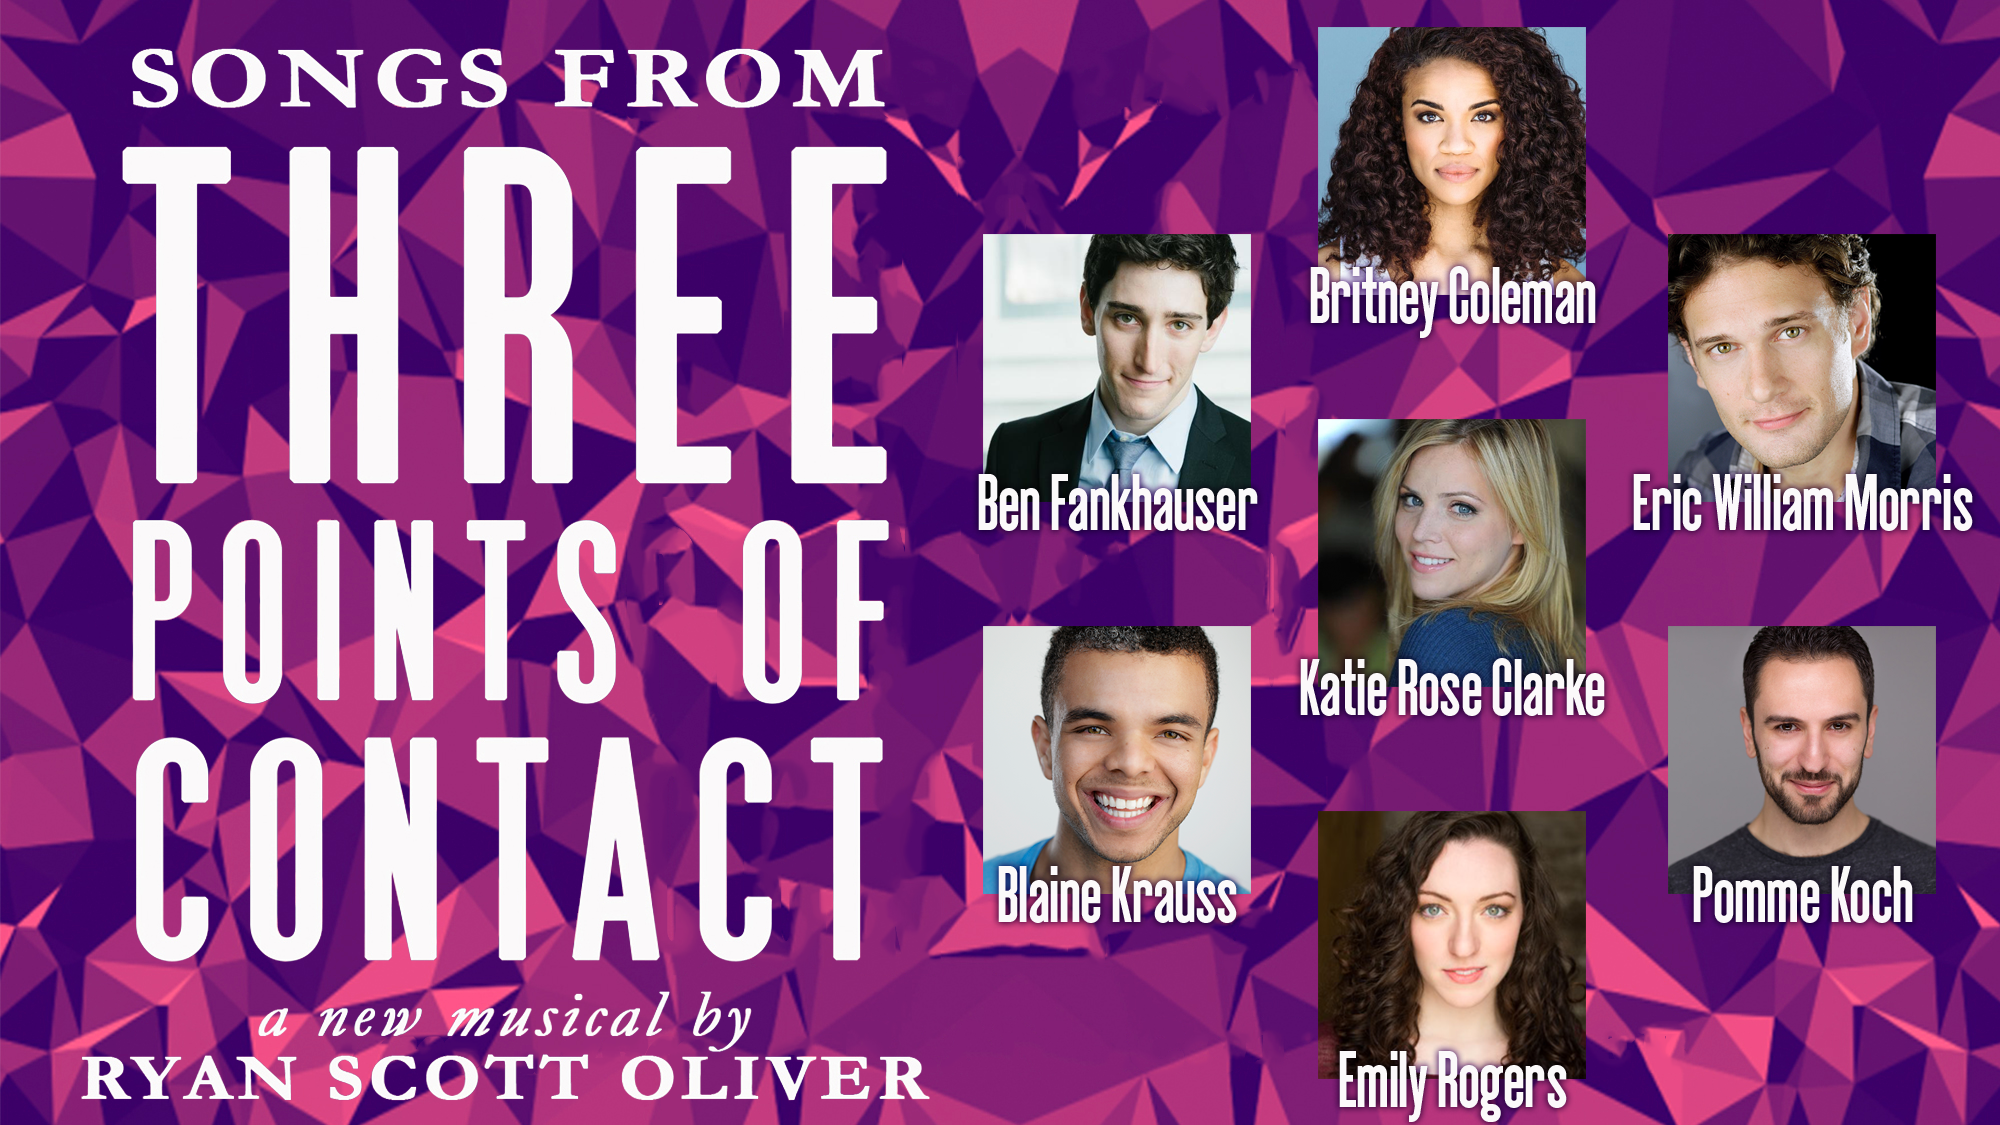 New Musical: Three Points of Contact by Ryan Scott Oliver